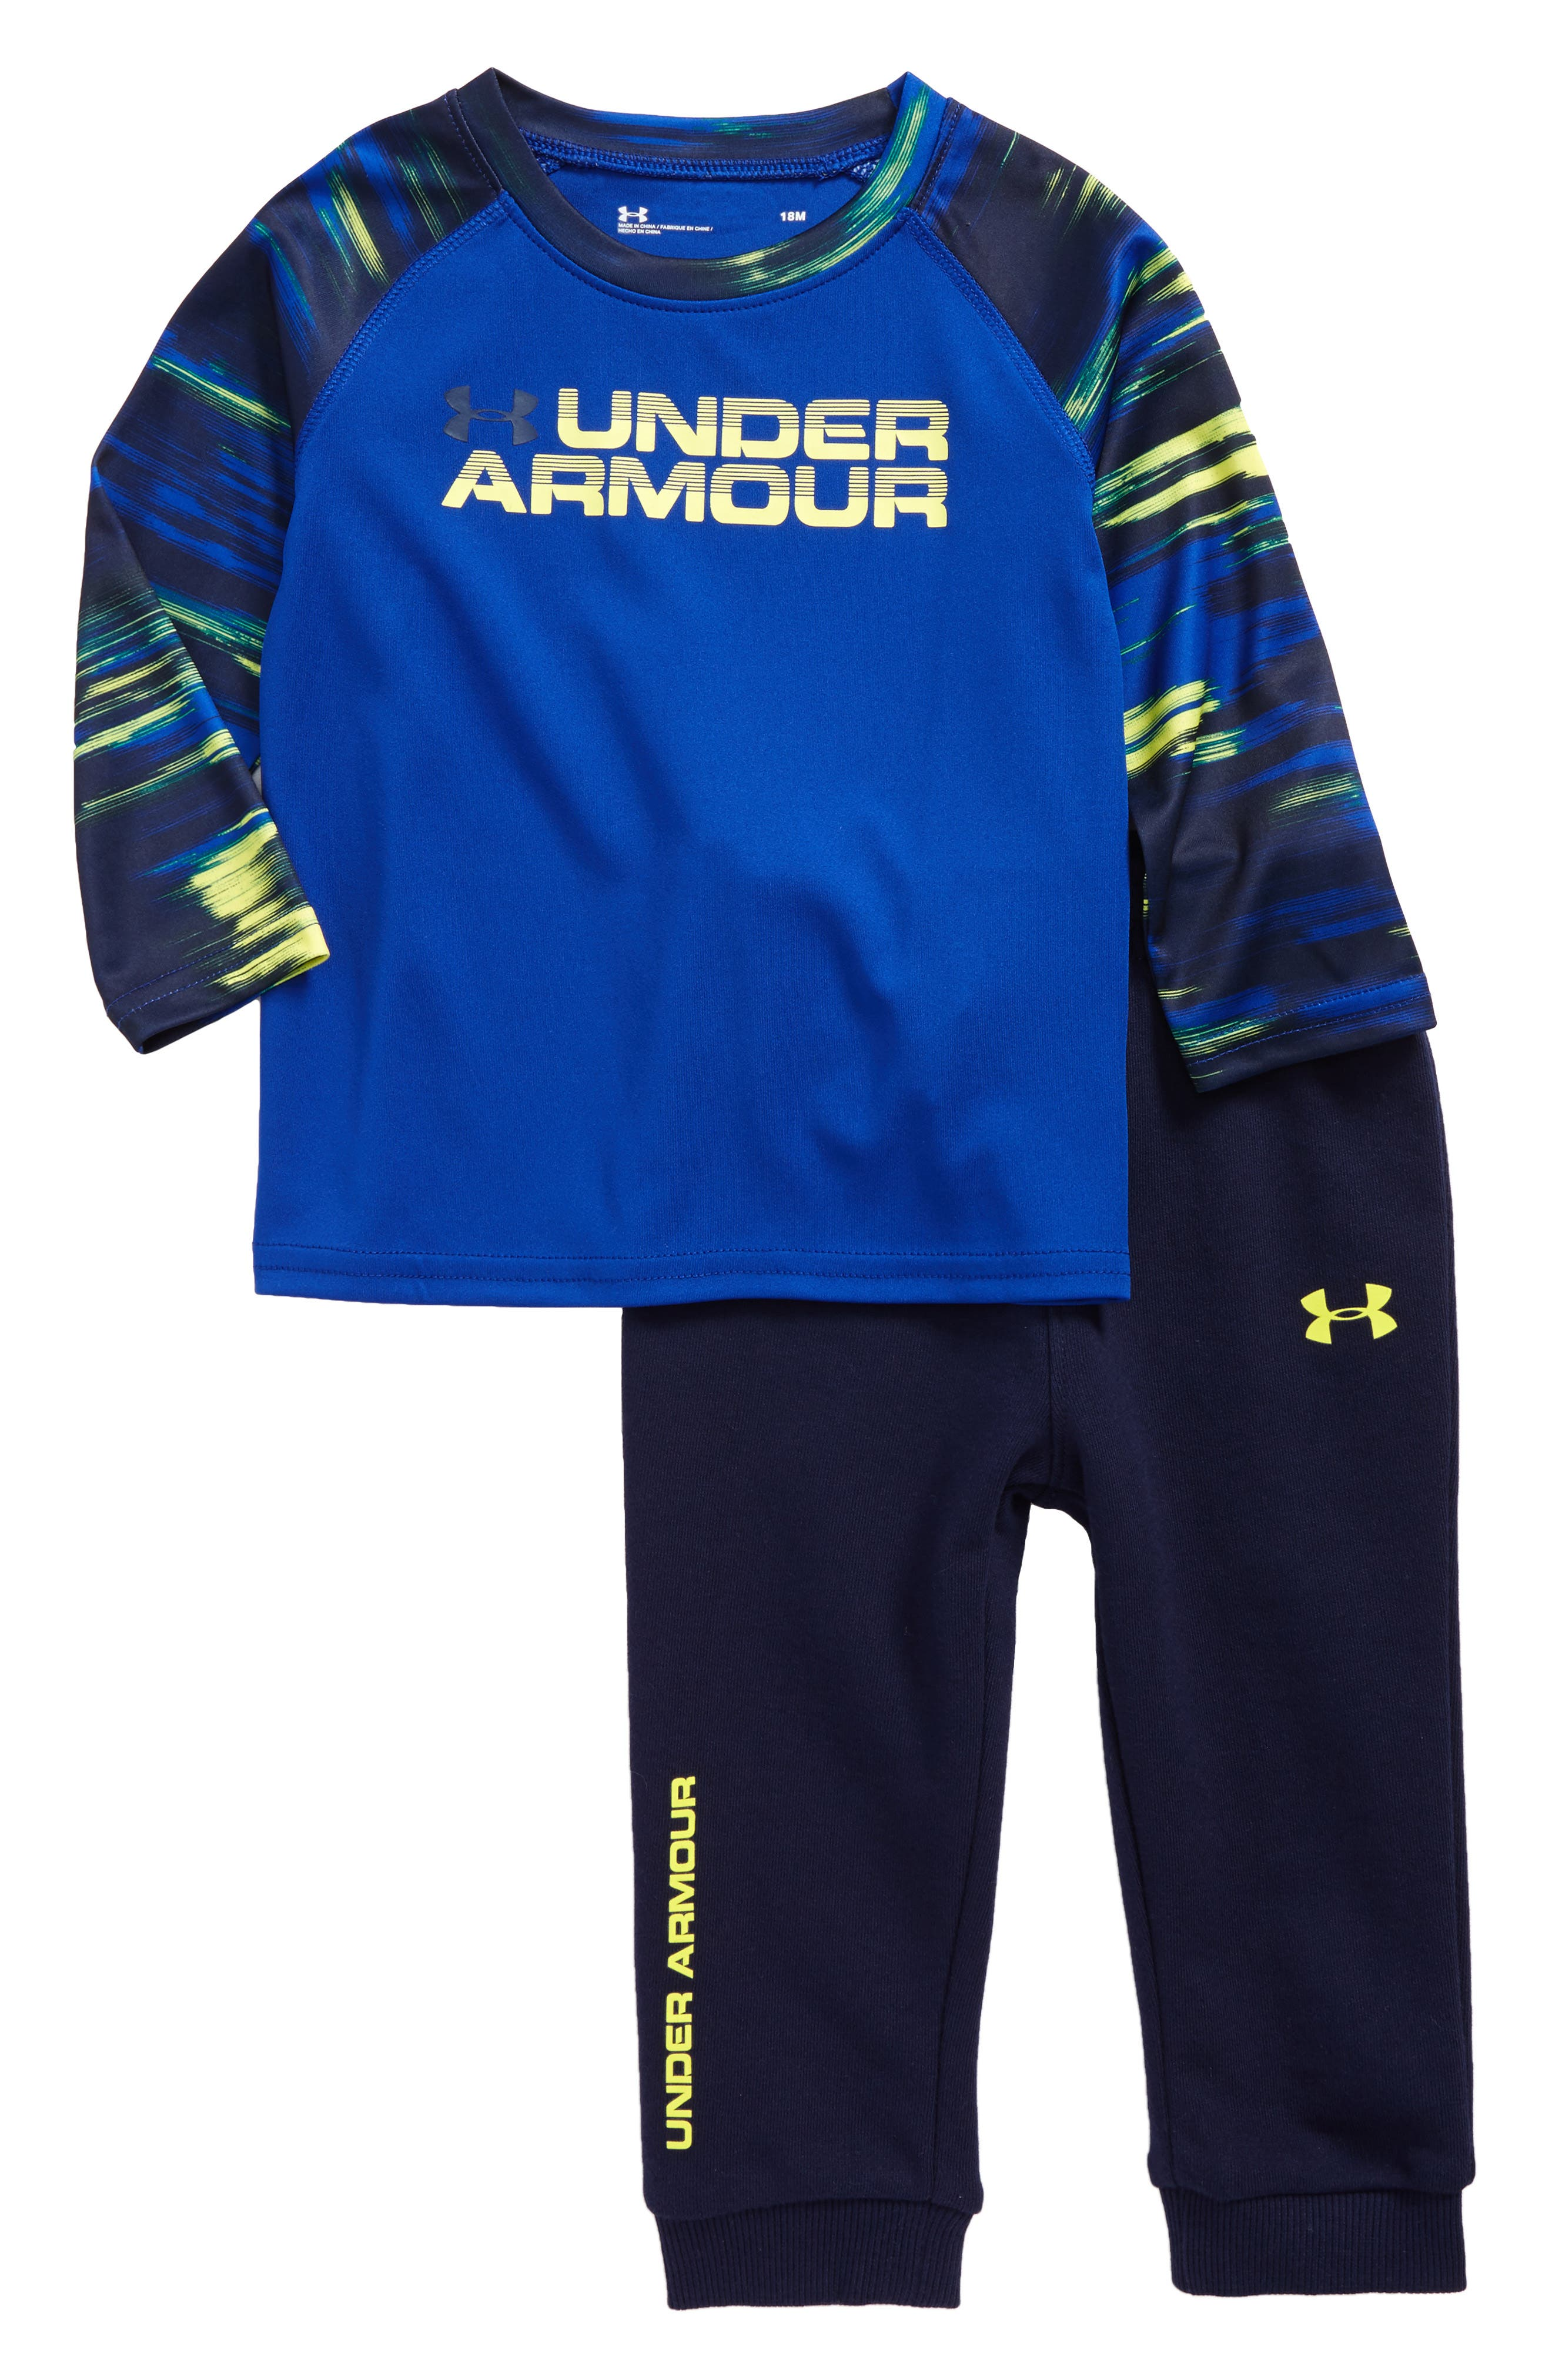 Under Armour Accelerate T-Shirt & Sweatpants Set (Baby Boys)